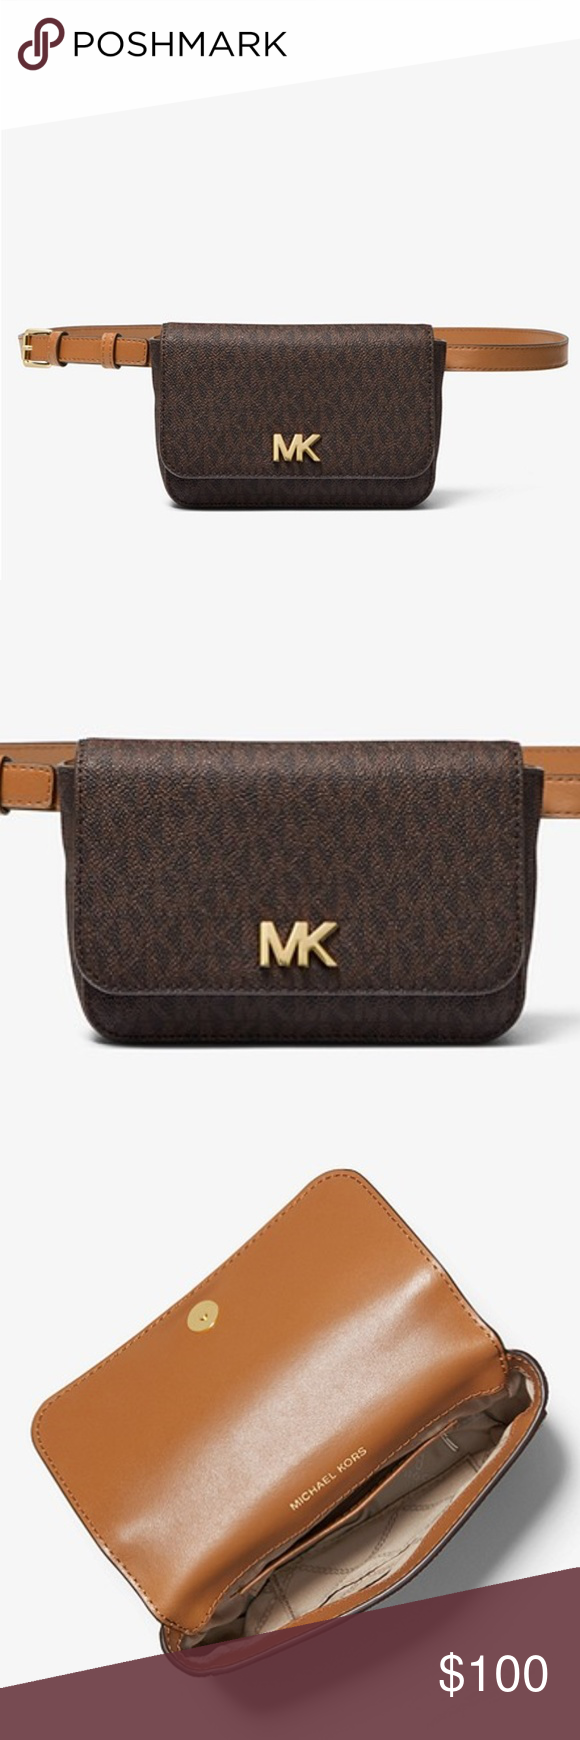 Michael Kors Mott Logo Belt Bag Nwt Perfect For Travel Or Daily Commutes The Mott Belt Bag Is Crafted From Logo Printed Canvas And Bags Michael Kors Signature Logo